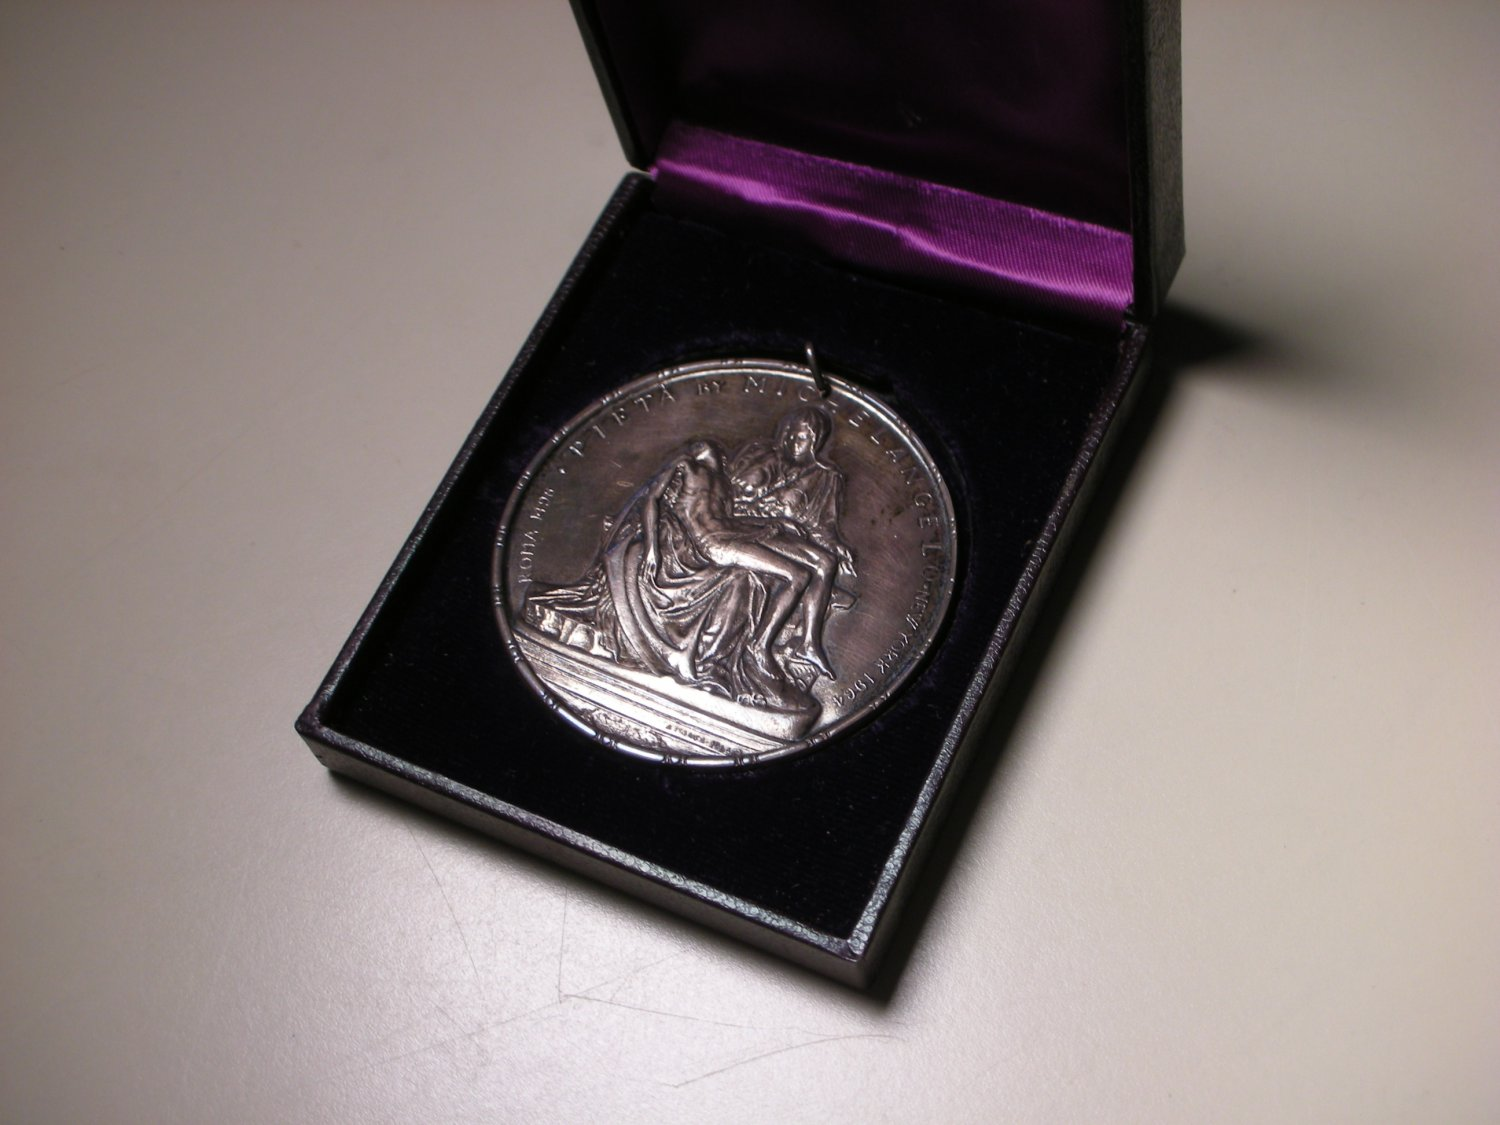 1964 Towle Sterling Silver Medal Medallic Art Limted Edition Series - Pieta